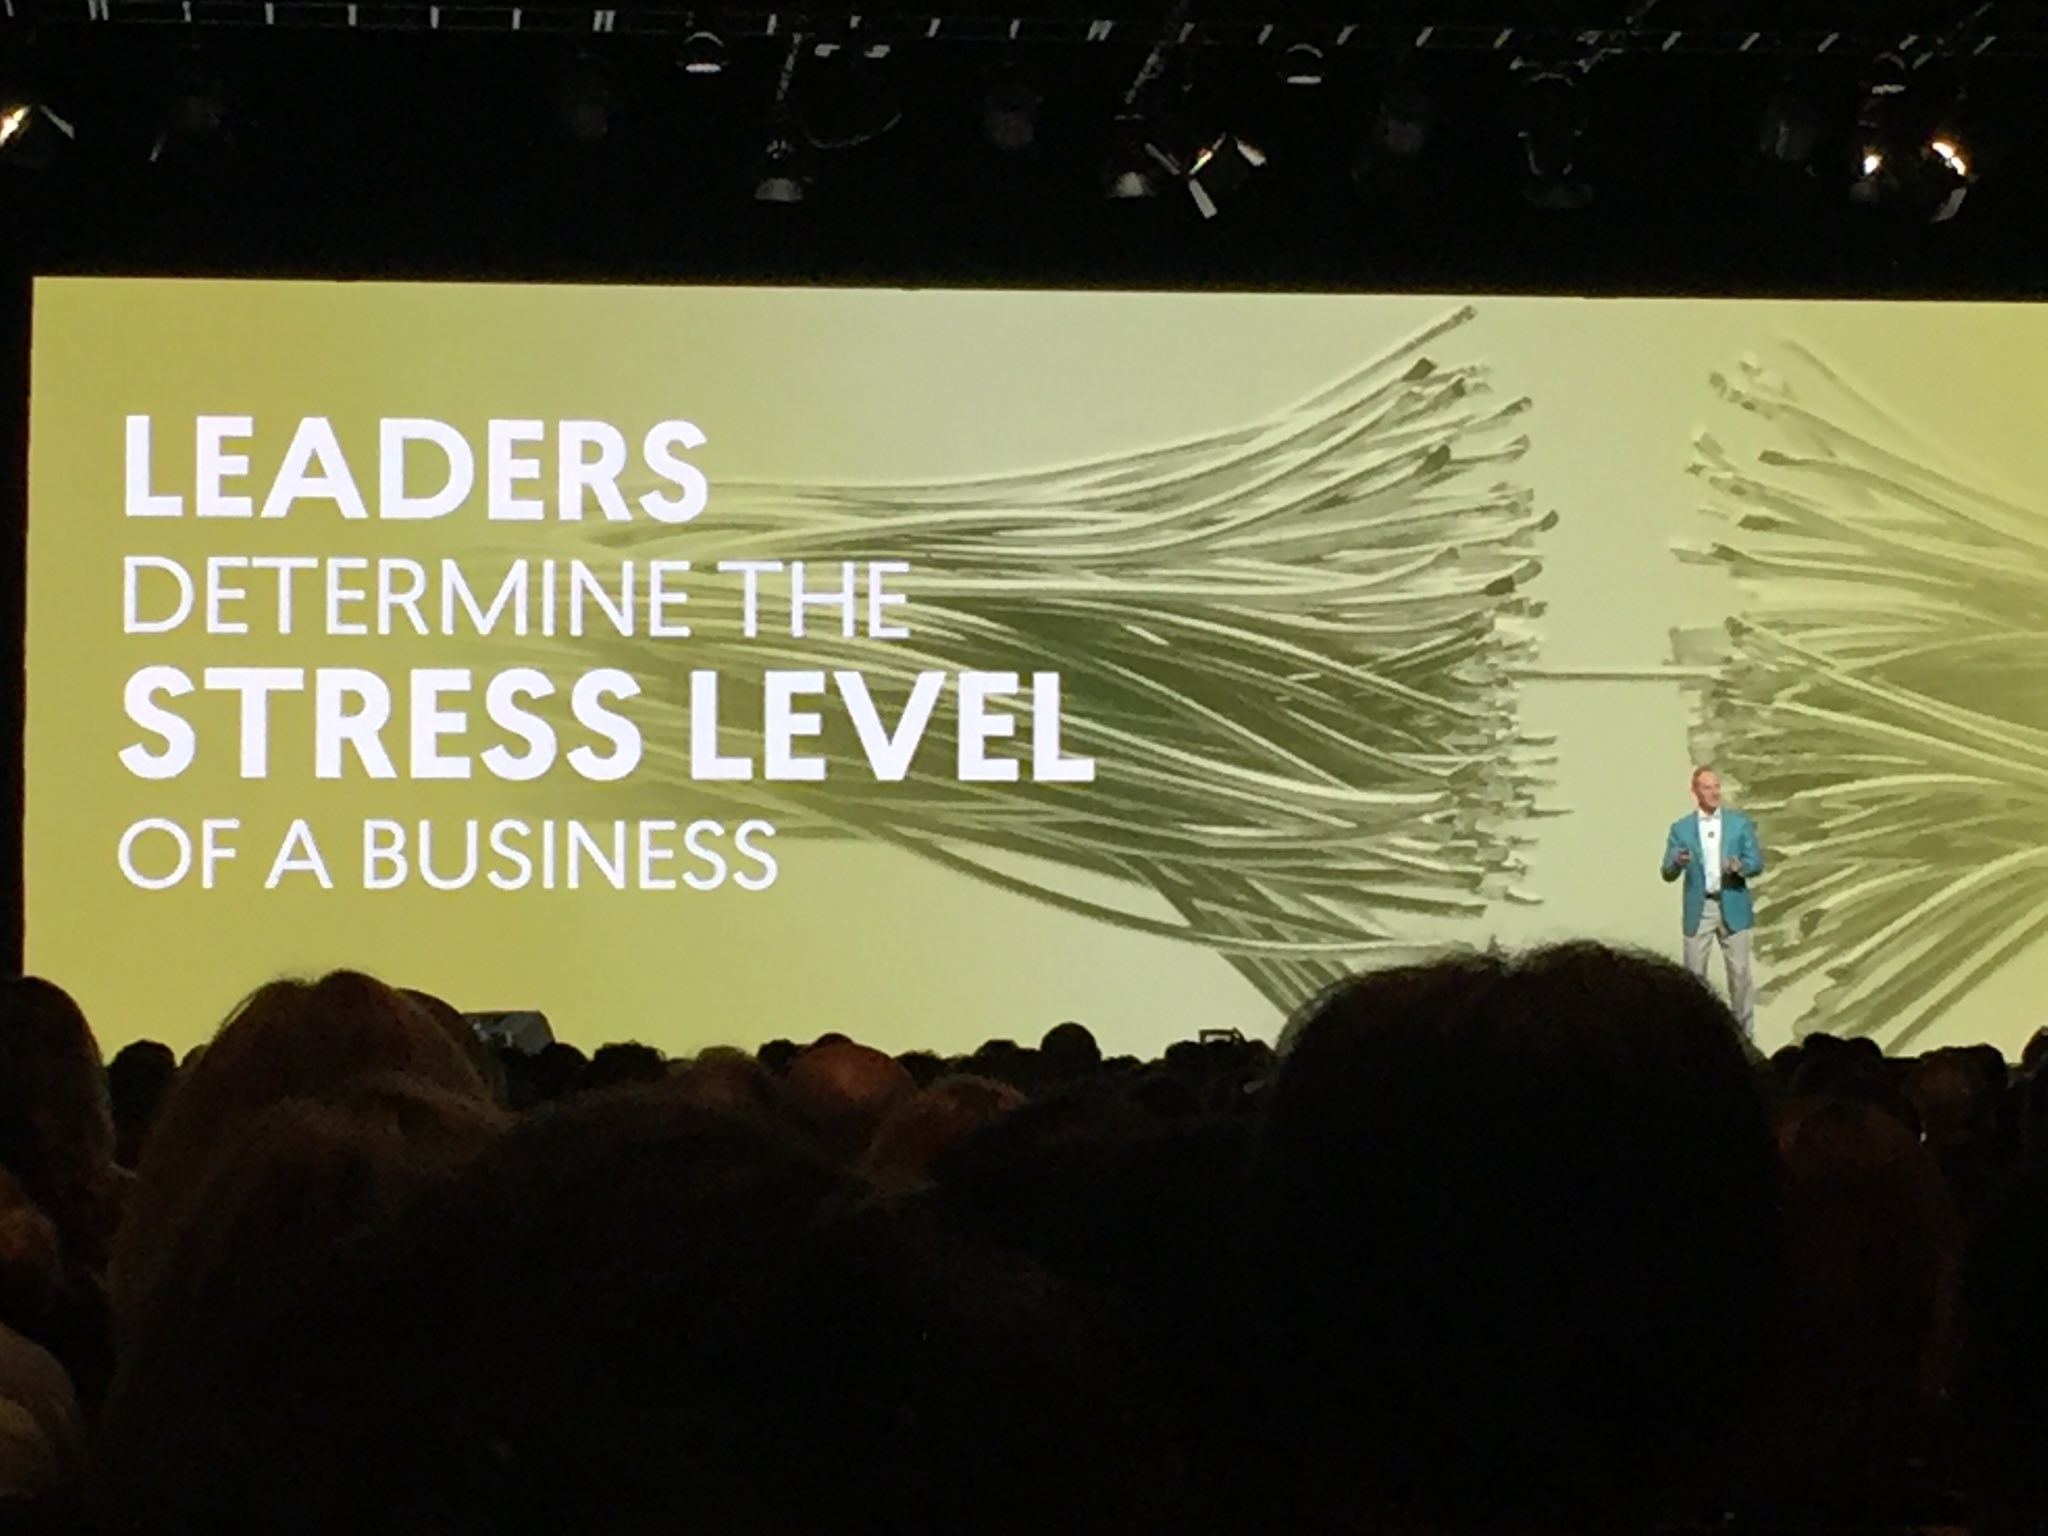 Leaders can also foster a culture of #resilience. #atd2019 https://t.co/JkOTvJao0G